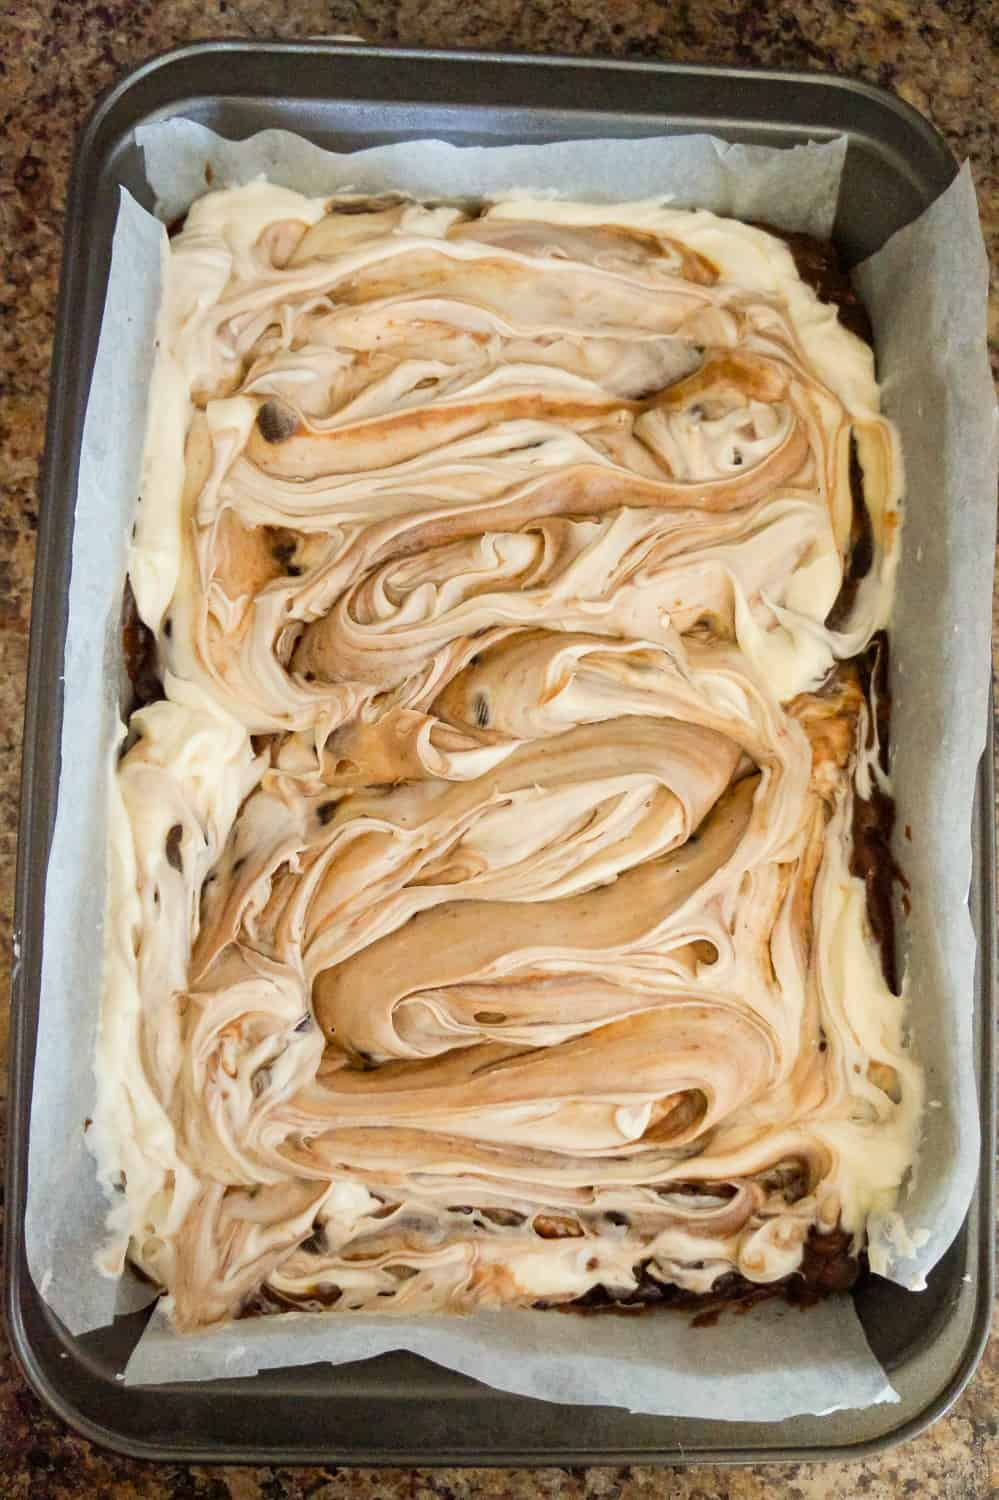 brownies with cream cheese swirl in pan before baking